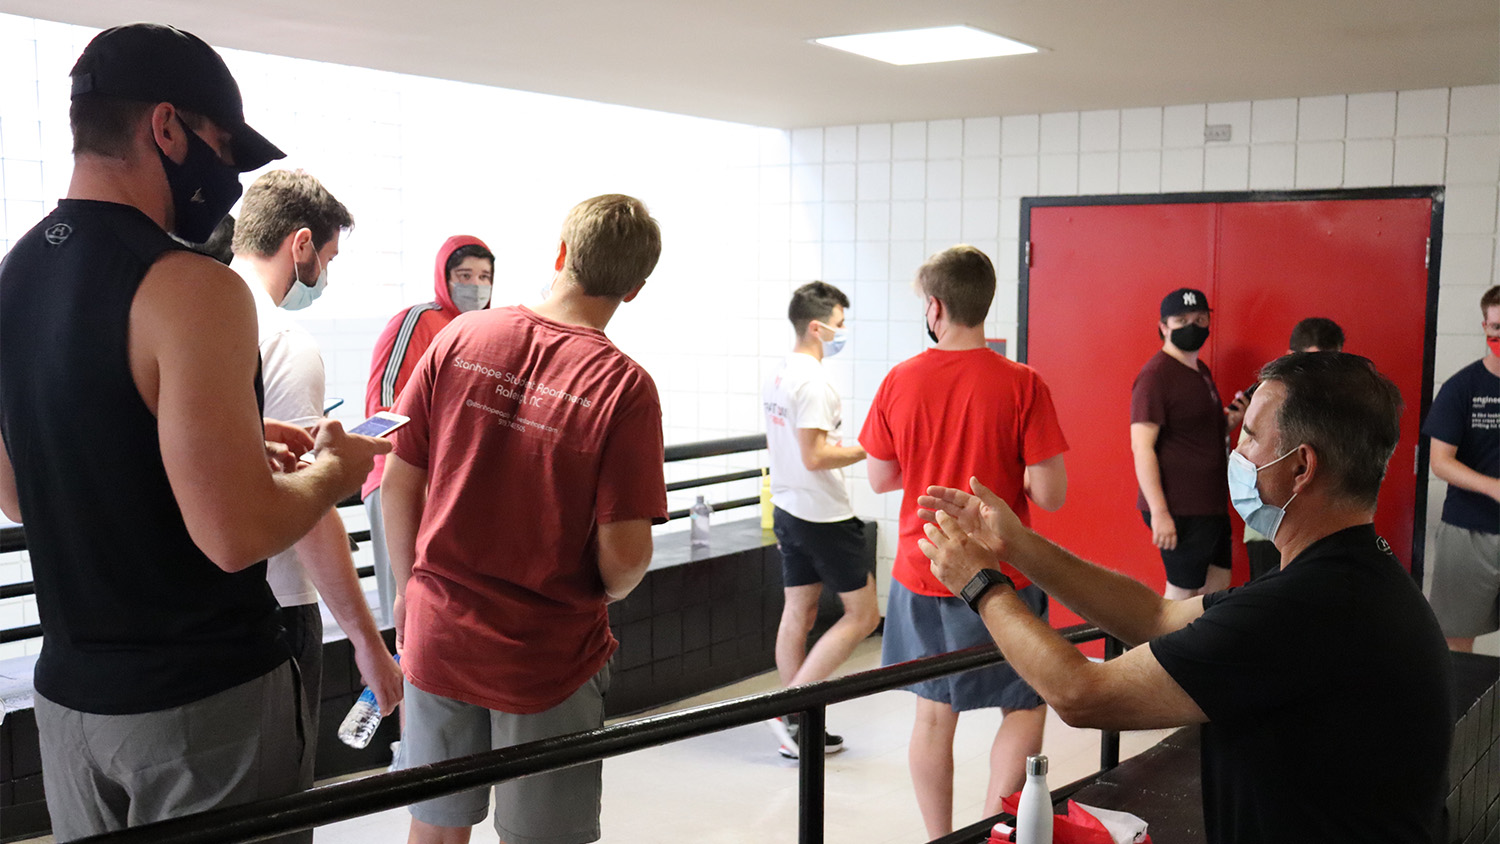 Professor Peter Koutroumpis talks to students in his Fitness Walking class.